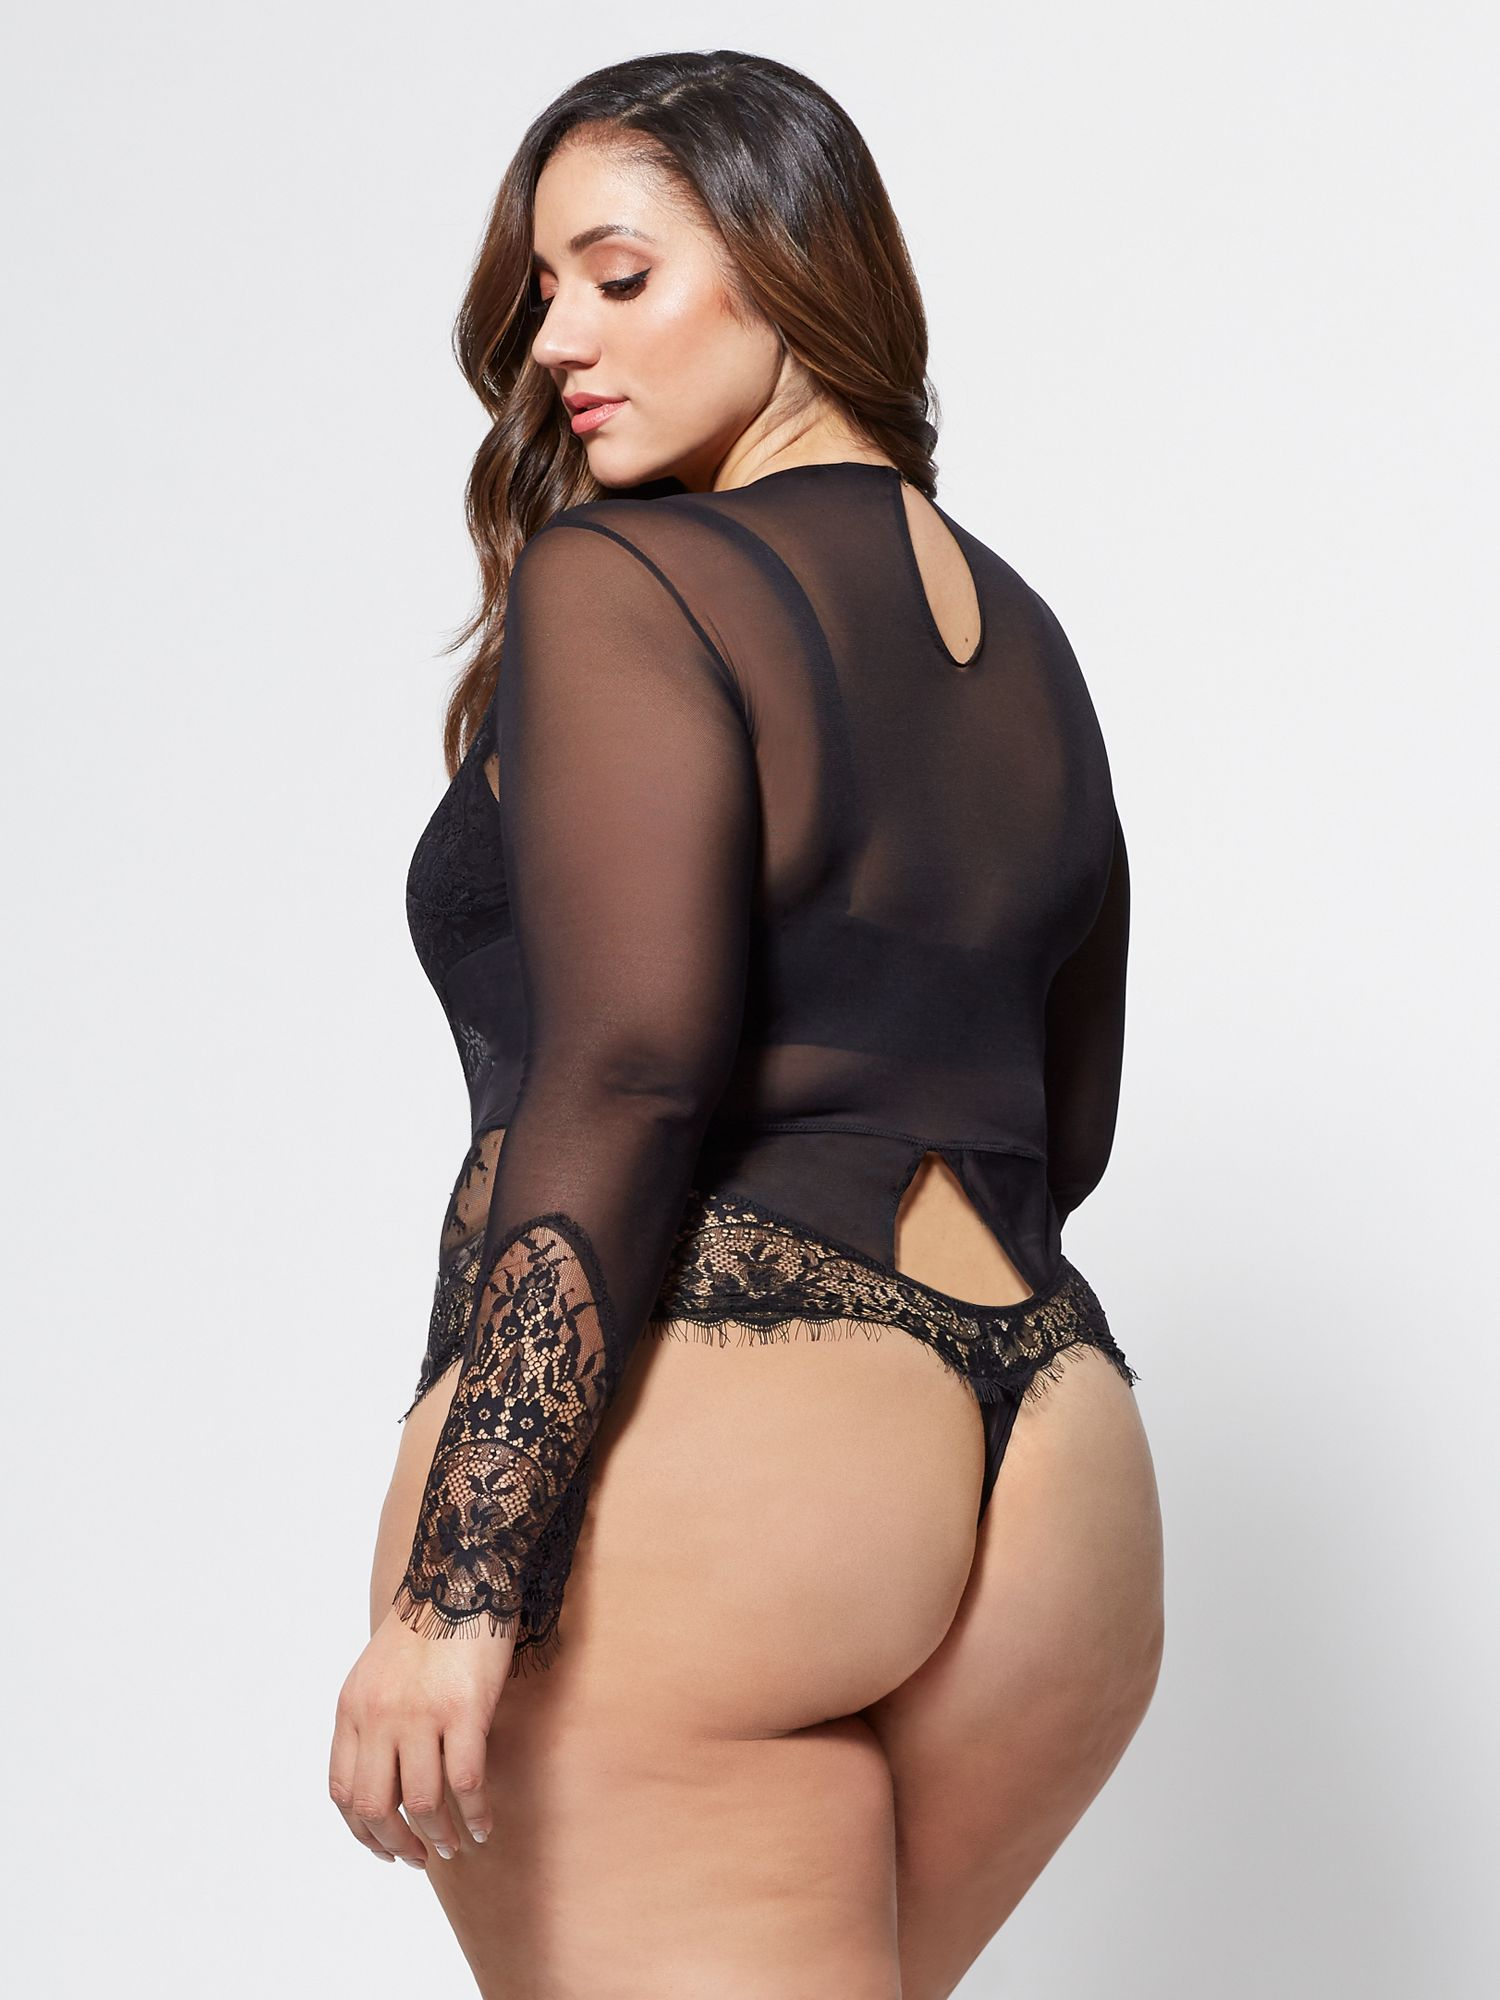 739a51c7463 Erica Lauren showing off her curves in this FTF Aryn Lace Bodysuit ...